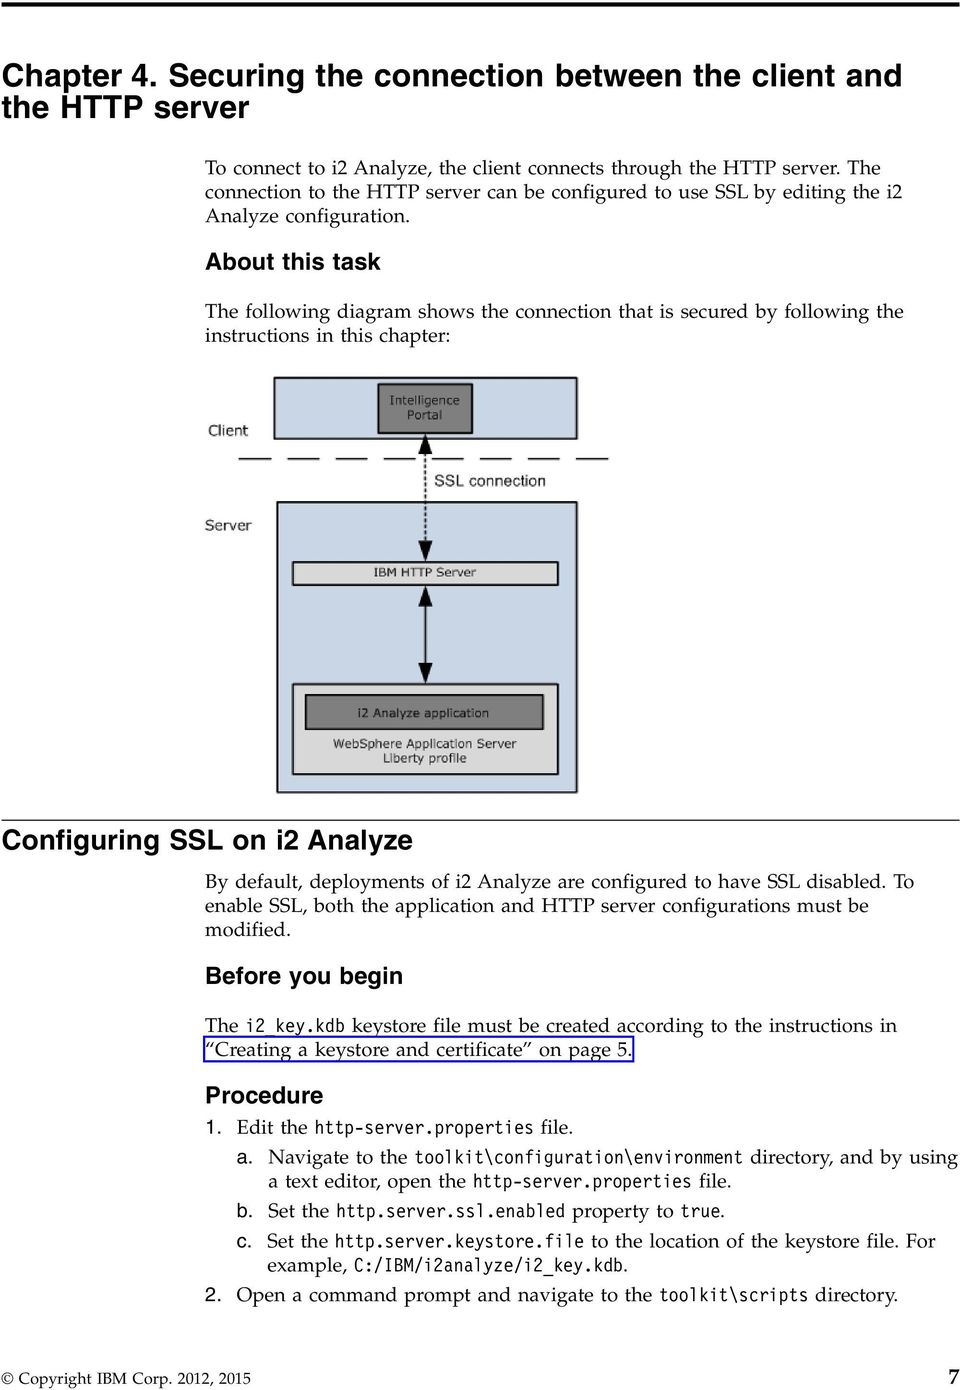 About this task The following diagram shows the connection that is secured by following the instructions in this chapter: Configuring SSL on i2 Analyze By default, deployments of i2 Analyze are